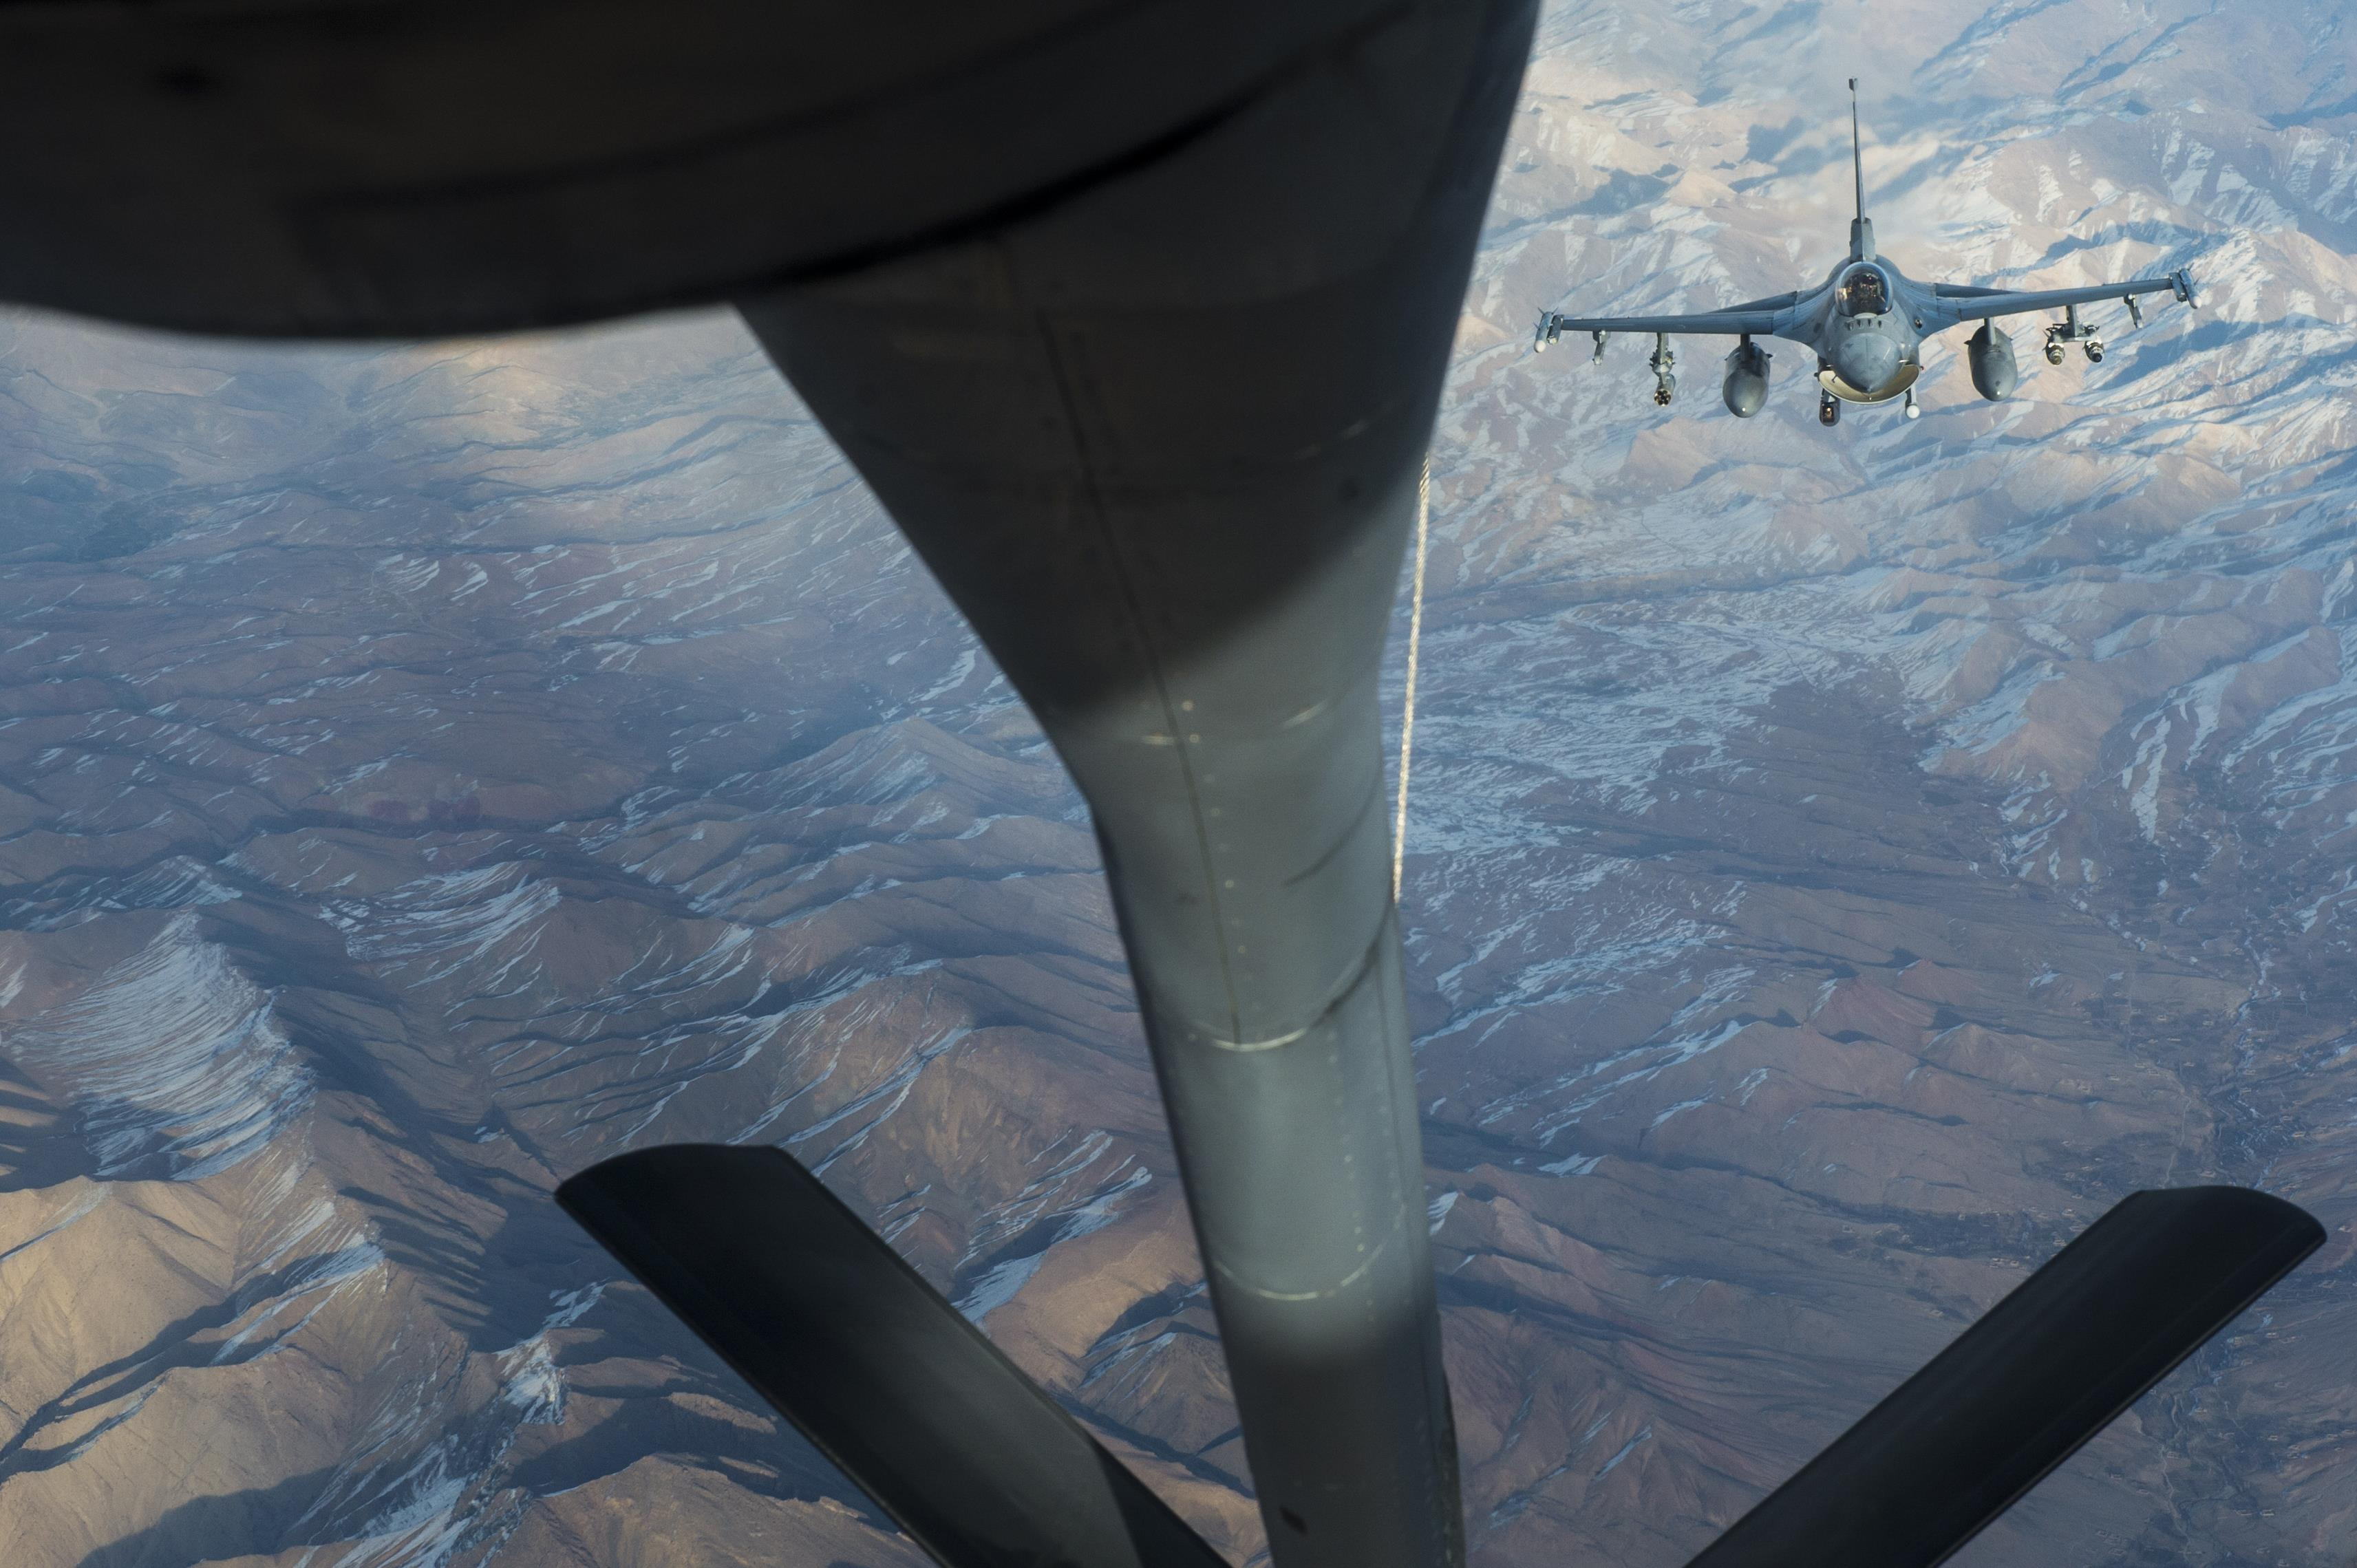 An Air Force F-16 Fighting Falcon approaches a KC-135 Stratotanker for aerial refueling to support an Operation Freedom's Sentinel mission over Afghanistan, Dec. 21, 2016. The 340th Expeditionary Air Refueling Squadron is actively engaged in tactical refueling operations, which extend kinetic capabilities across Southwest Asia. Air Force photo by Staff Sgt. Matthew B. Fredericks